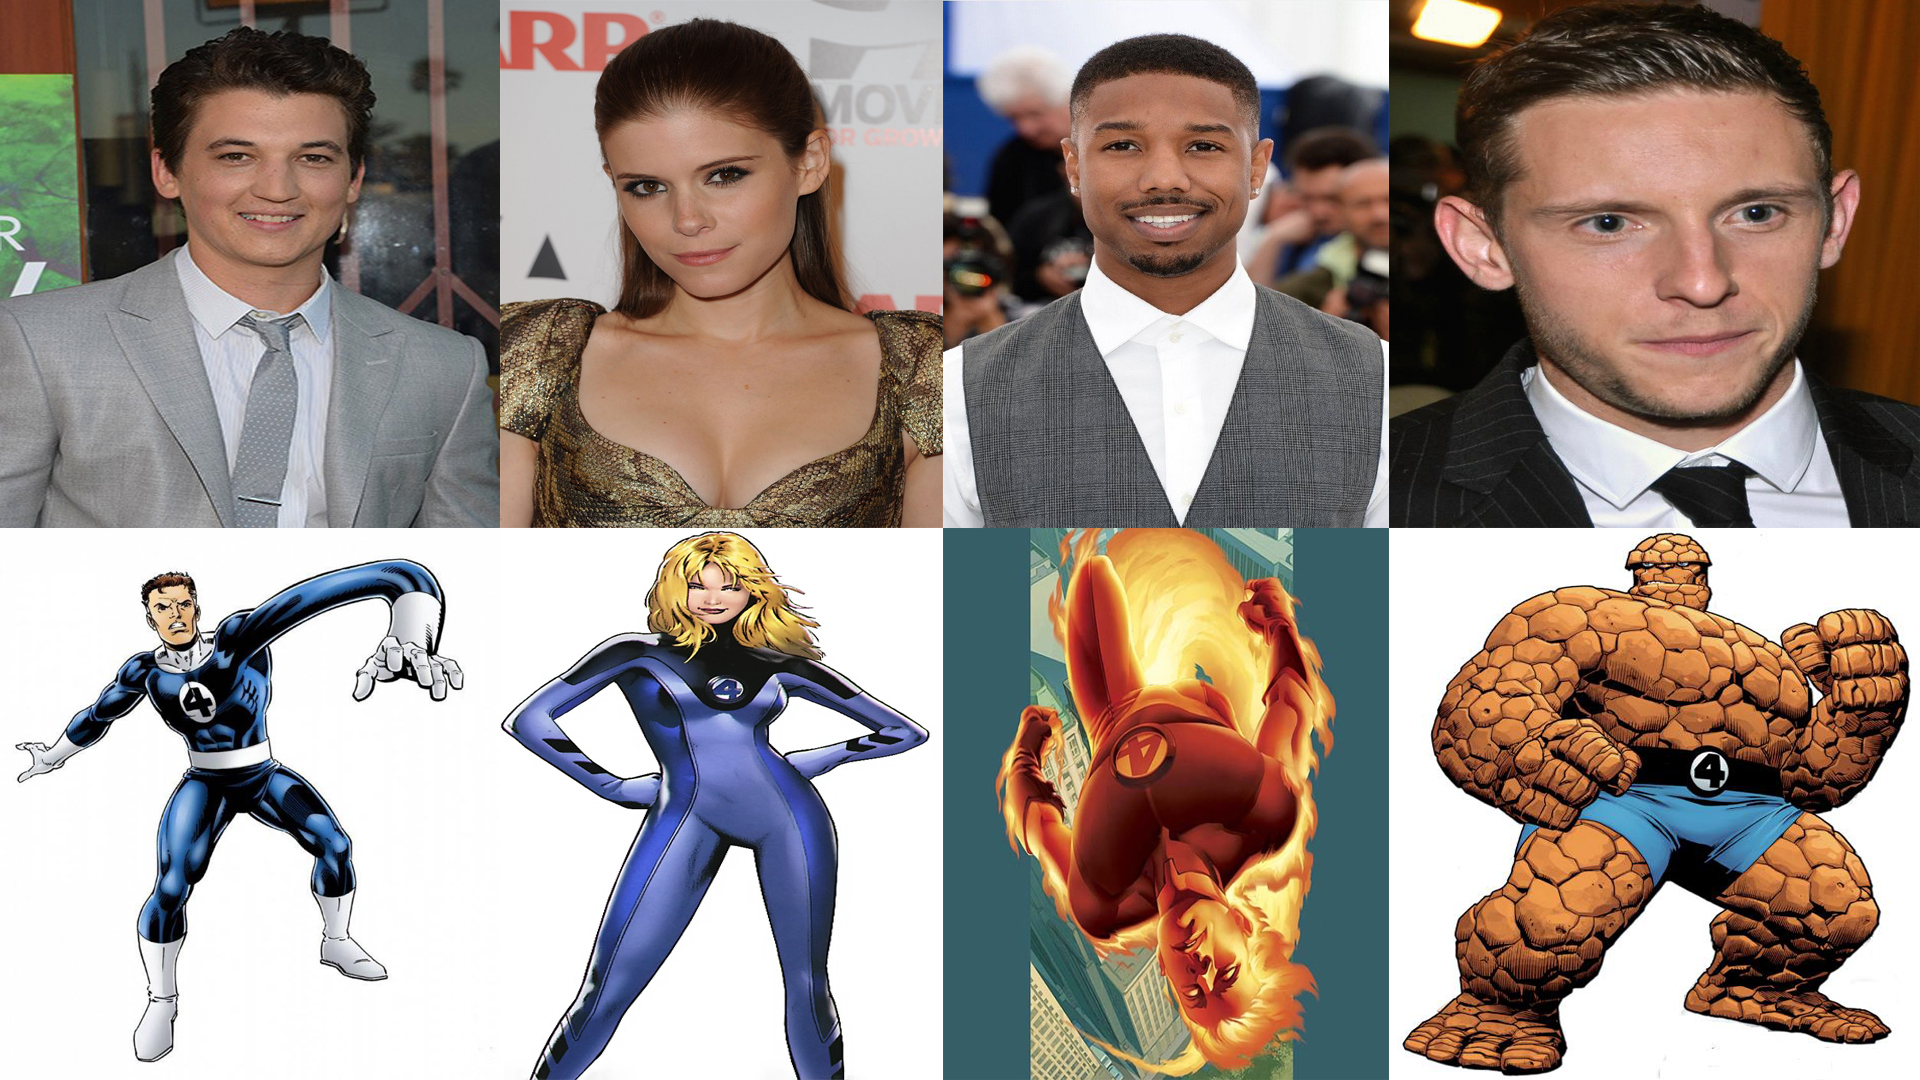 Films Super-Héros (autre que Franchise Marvel/Disney) - Page 4 58649-fantastic-four-2015-human-torch-fantastic-four